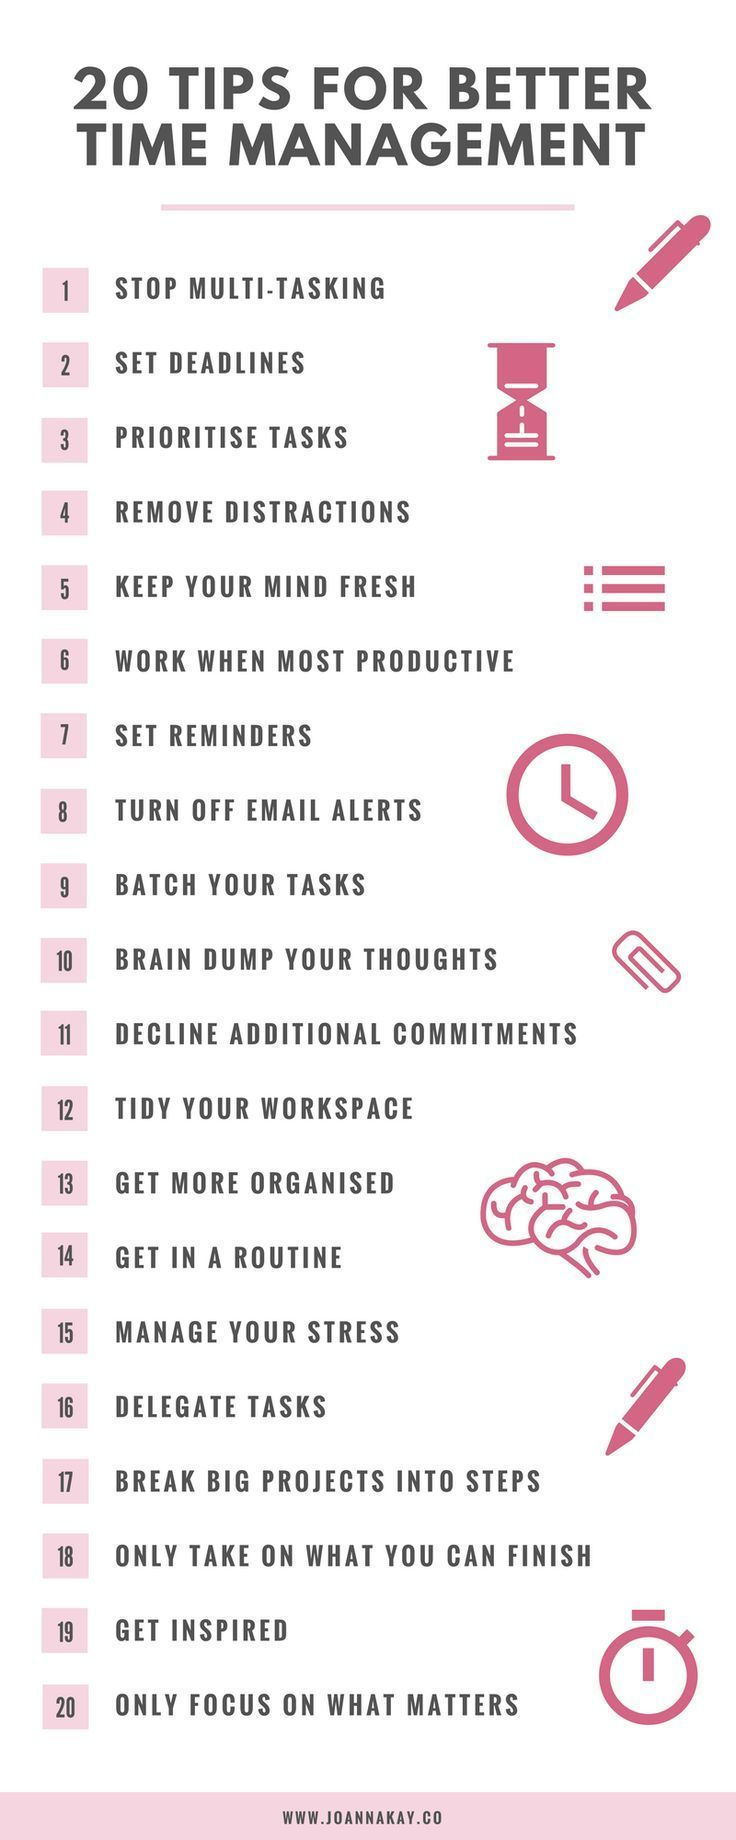 20 Time Management Tips When You Work From Home  http://snip.ly/yqccq?utm_content=buffer9ec73&utm_medium=social&utm_source=pinterest.com&utm_campaign=buffer#https://www.joannakay.co/blog/20-time-management-tips-when-you-work-from-home